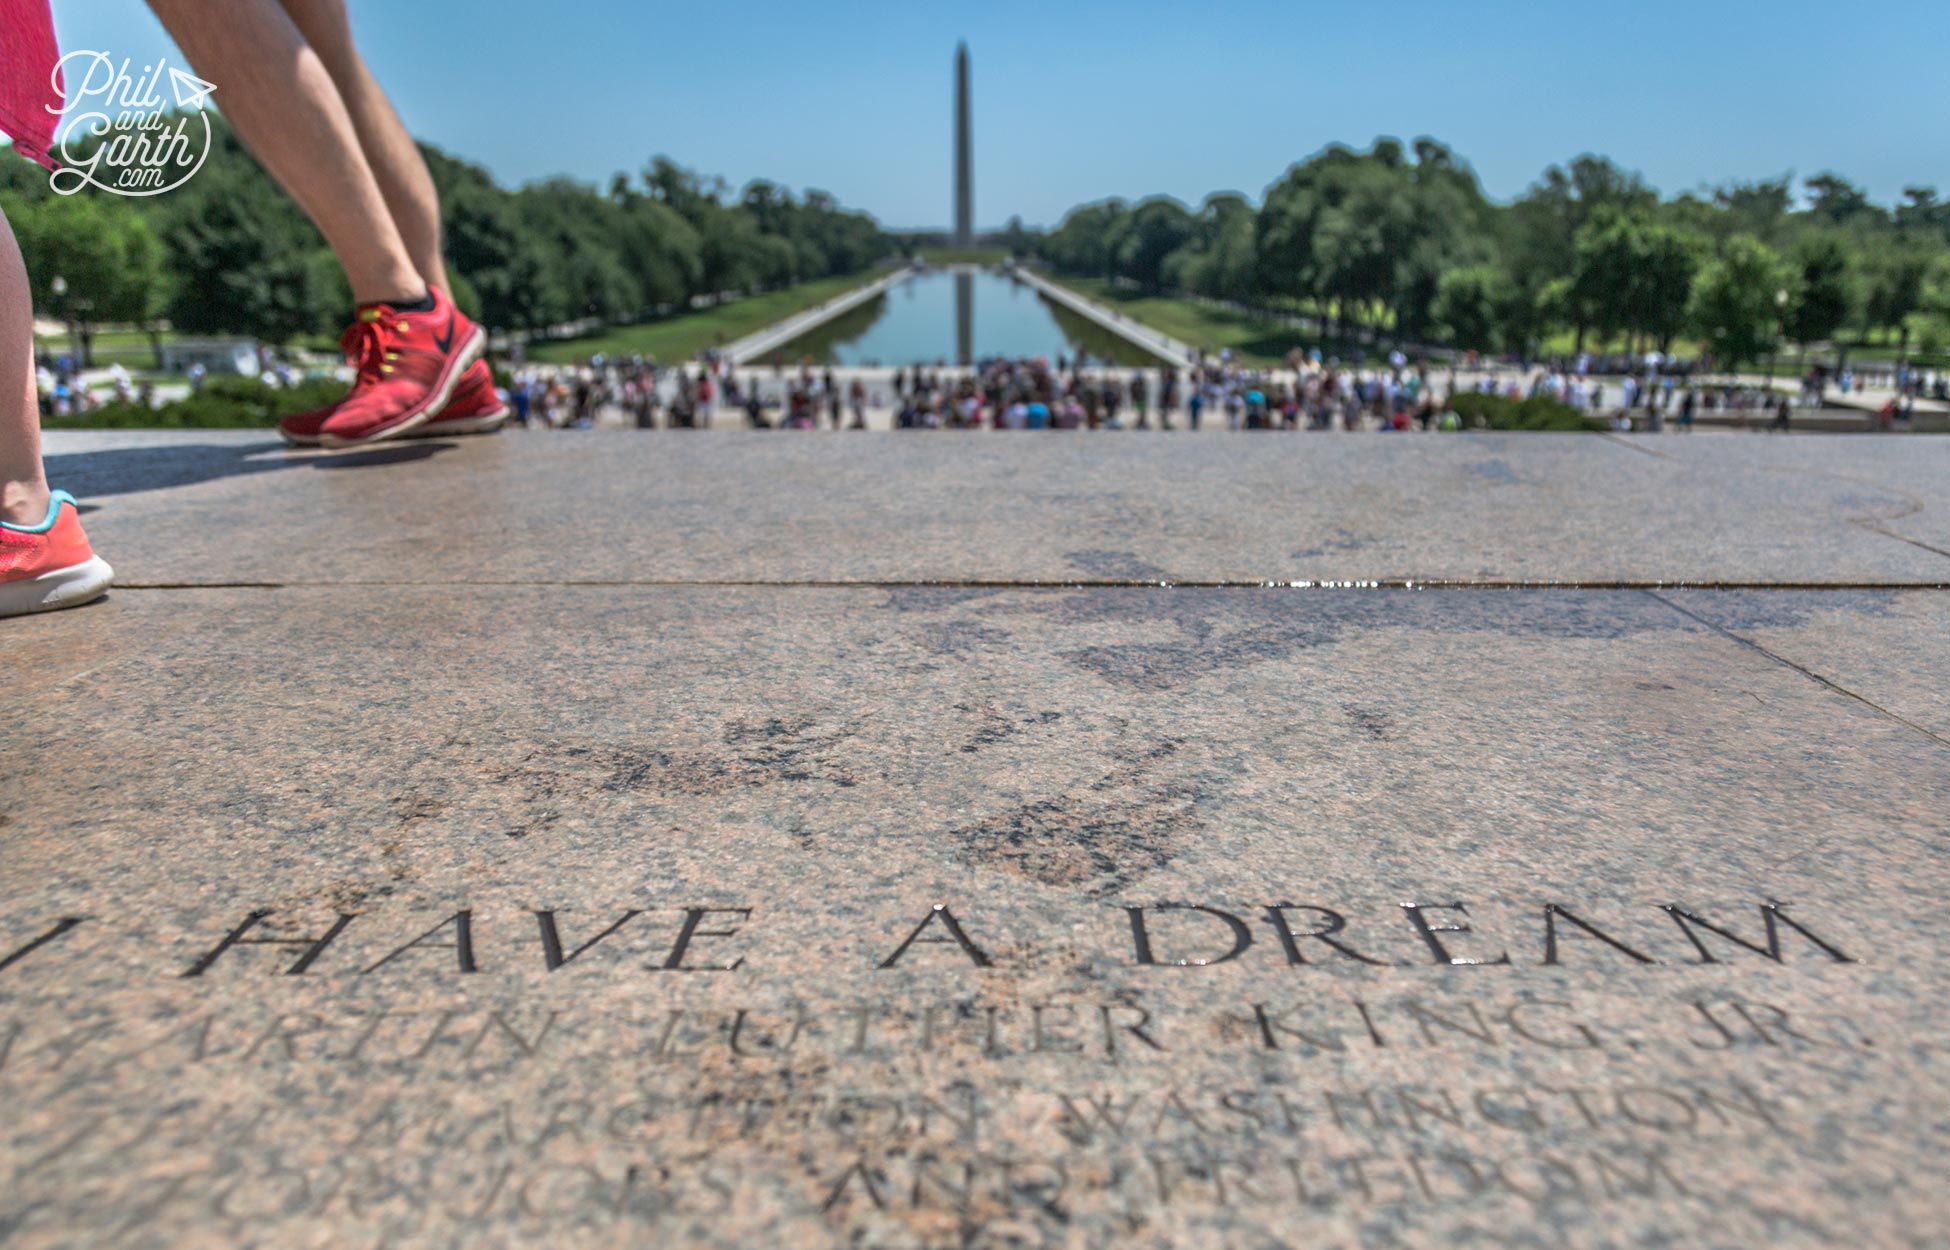 I Have A Dream speech by Martin Luther King Jr